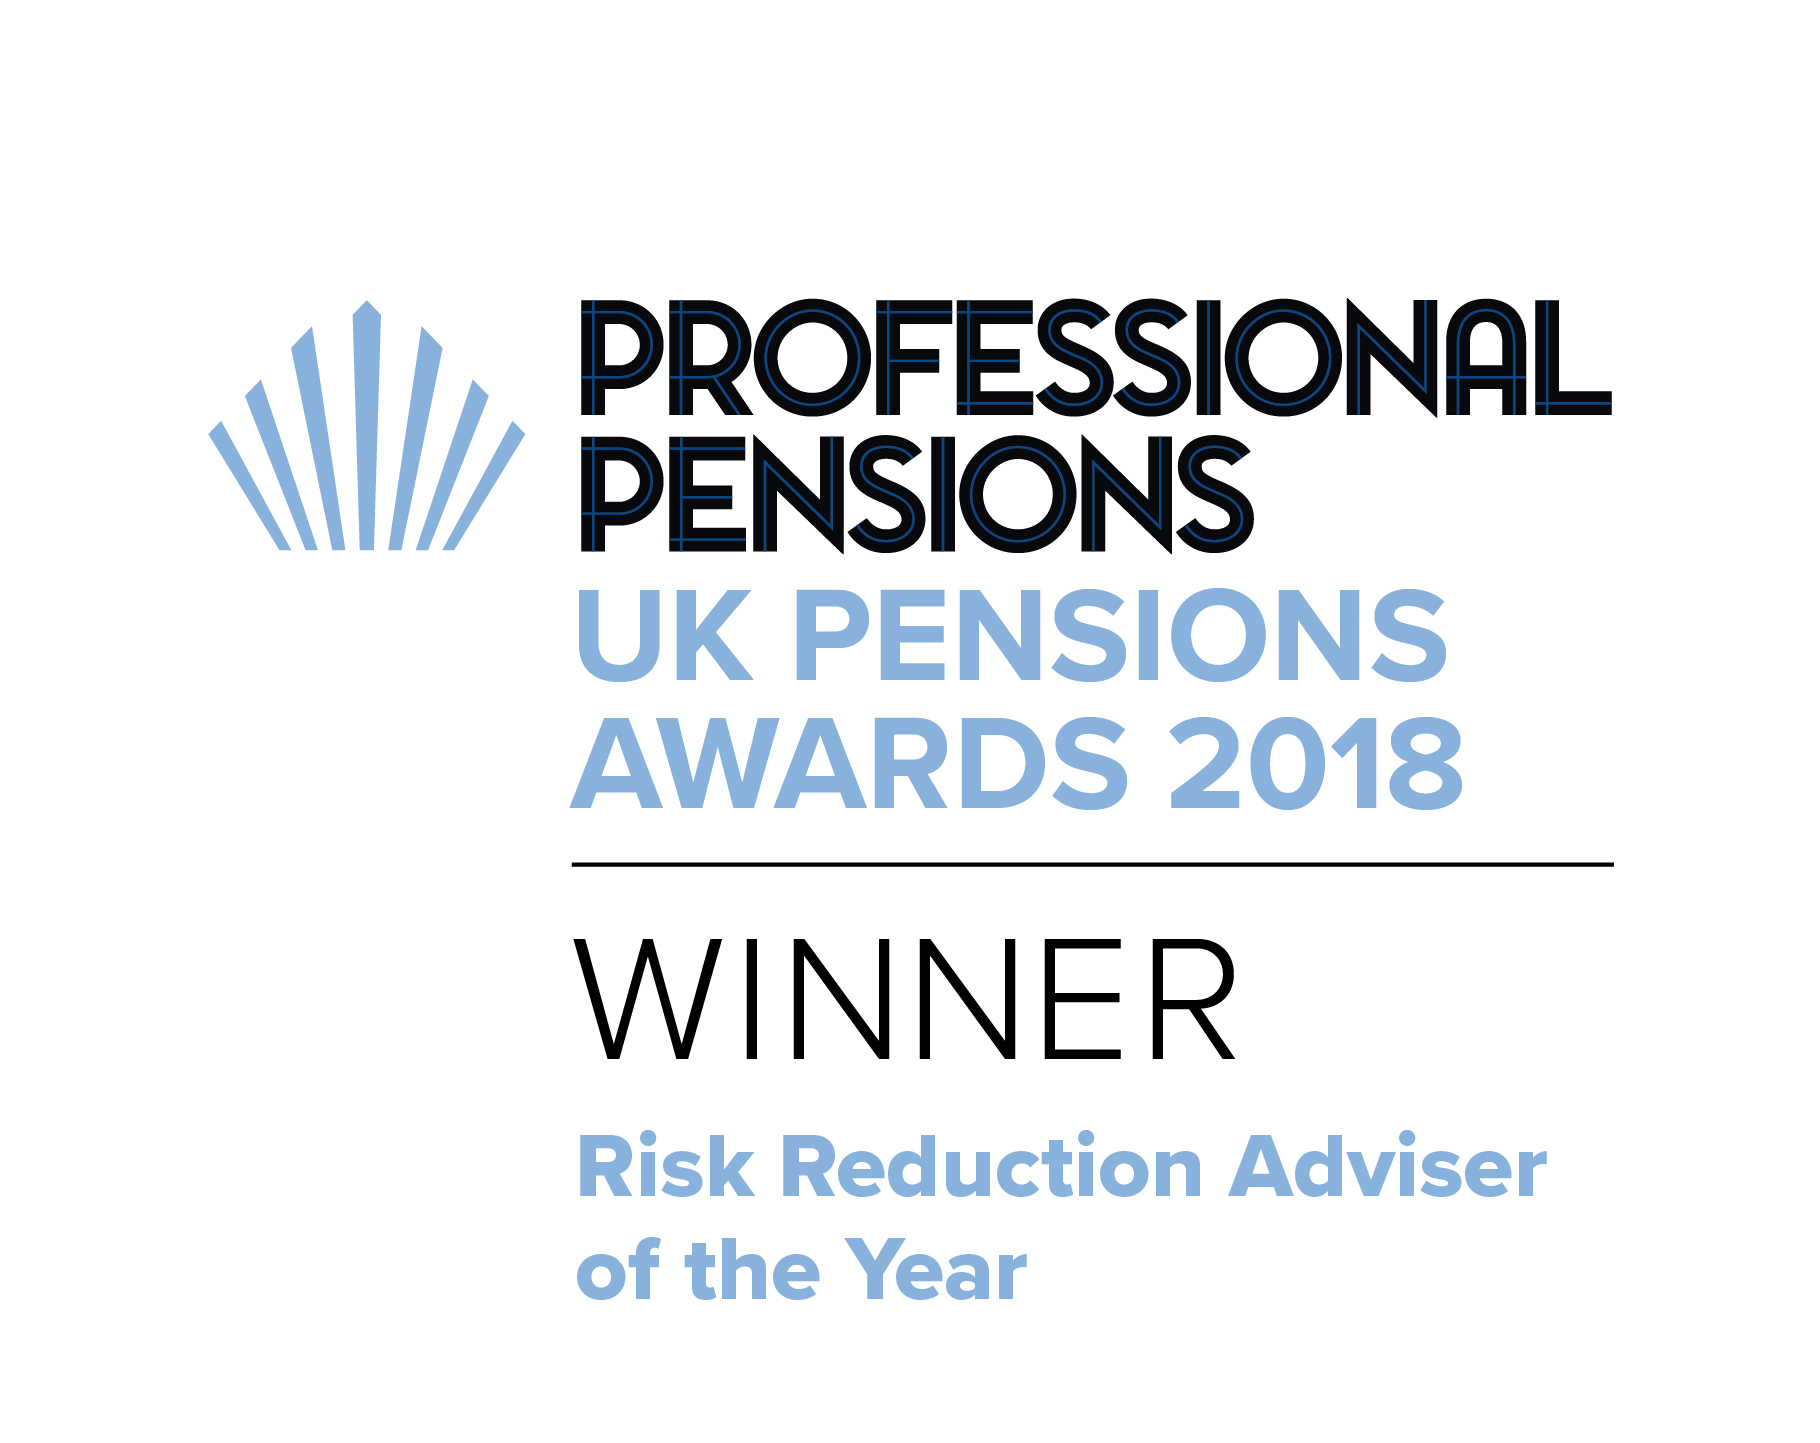 2018 UK Pensions Awards - Risk Reduction Adviser of the Year